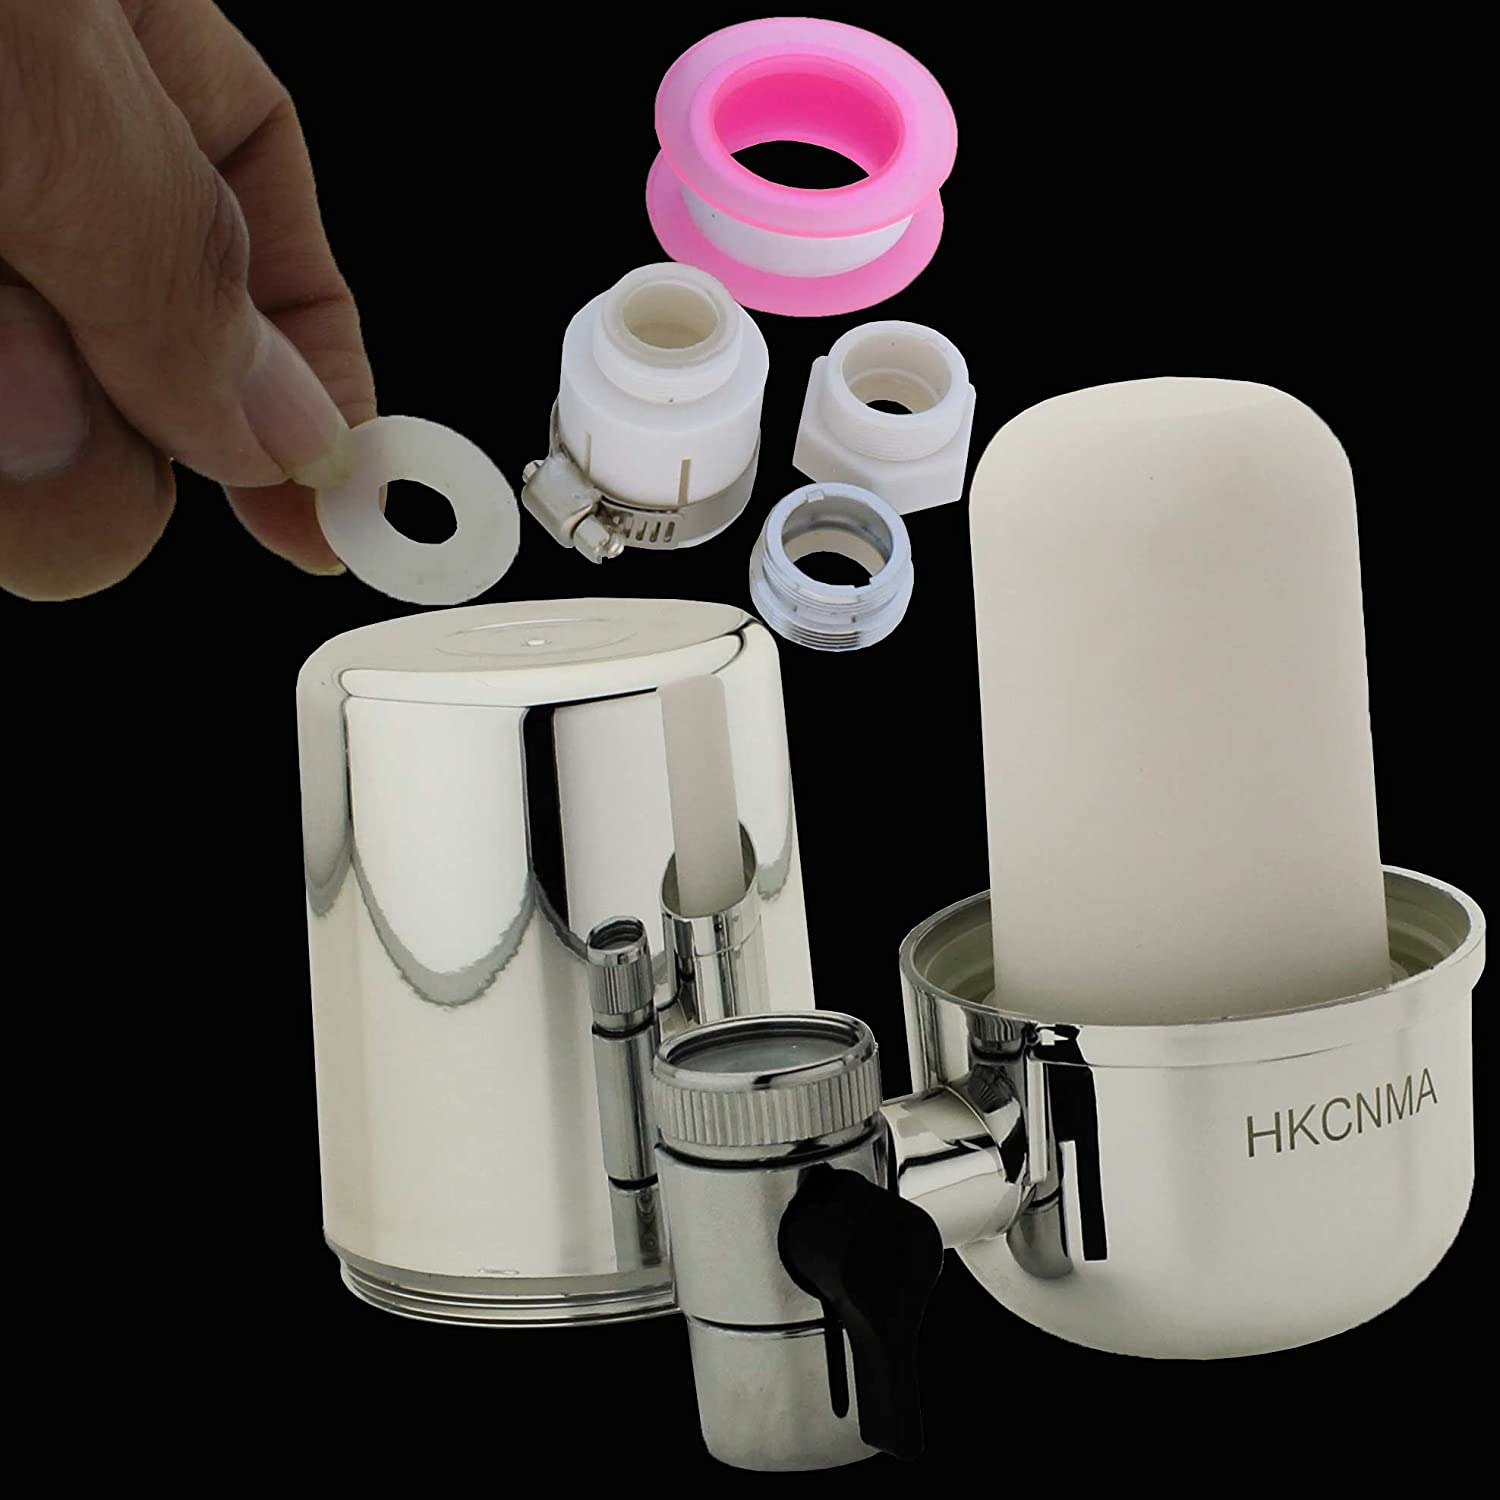 Amazon.com: HKCNMA Chrome Faucet Water Filter System & Tap Water ...